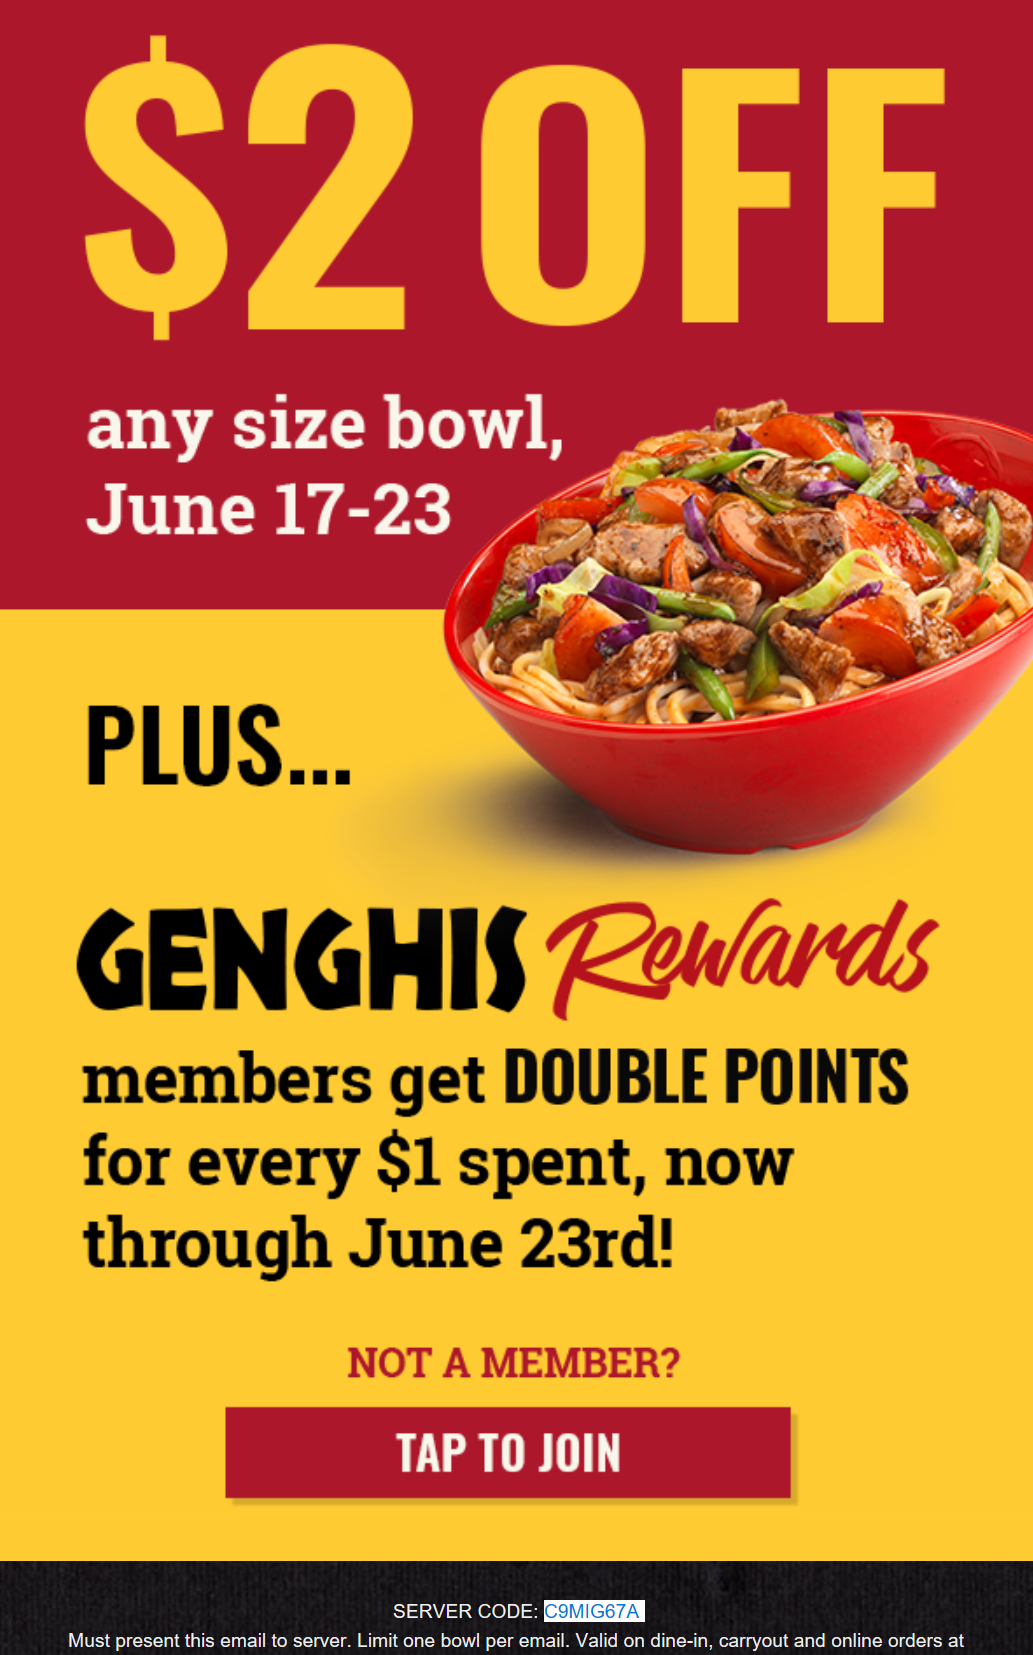 photo about Genghis Grill Printable Coupon named Genghis Grill Discount coupons and Financial savings